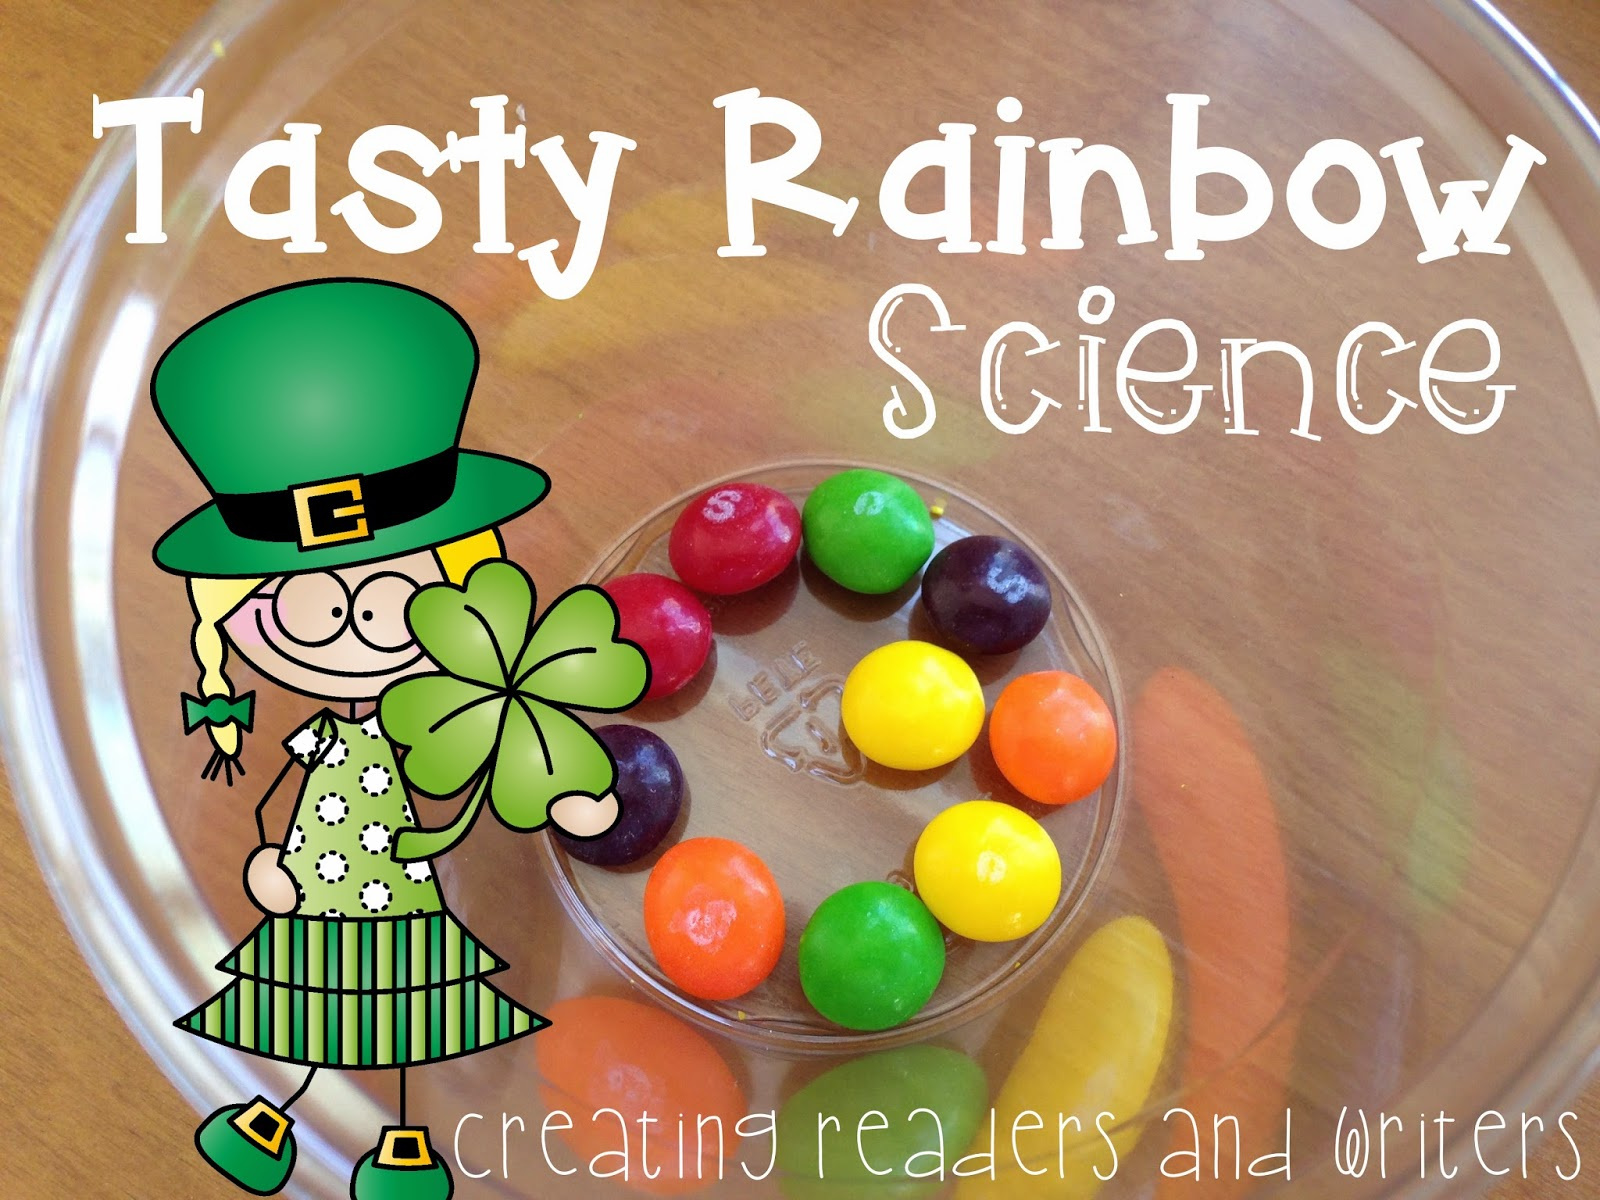 Creating Readers And Writers St Patrick S Day Science